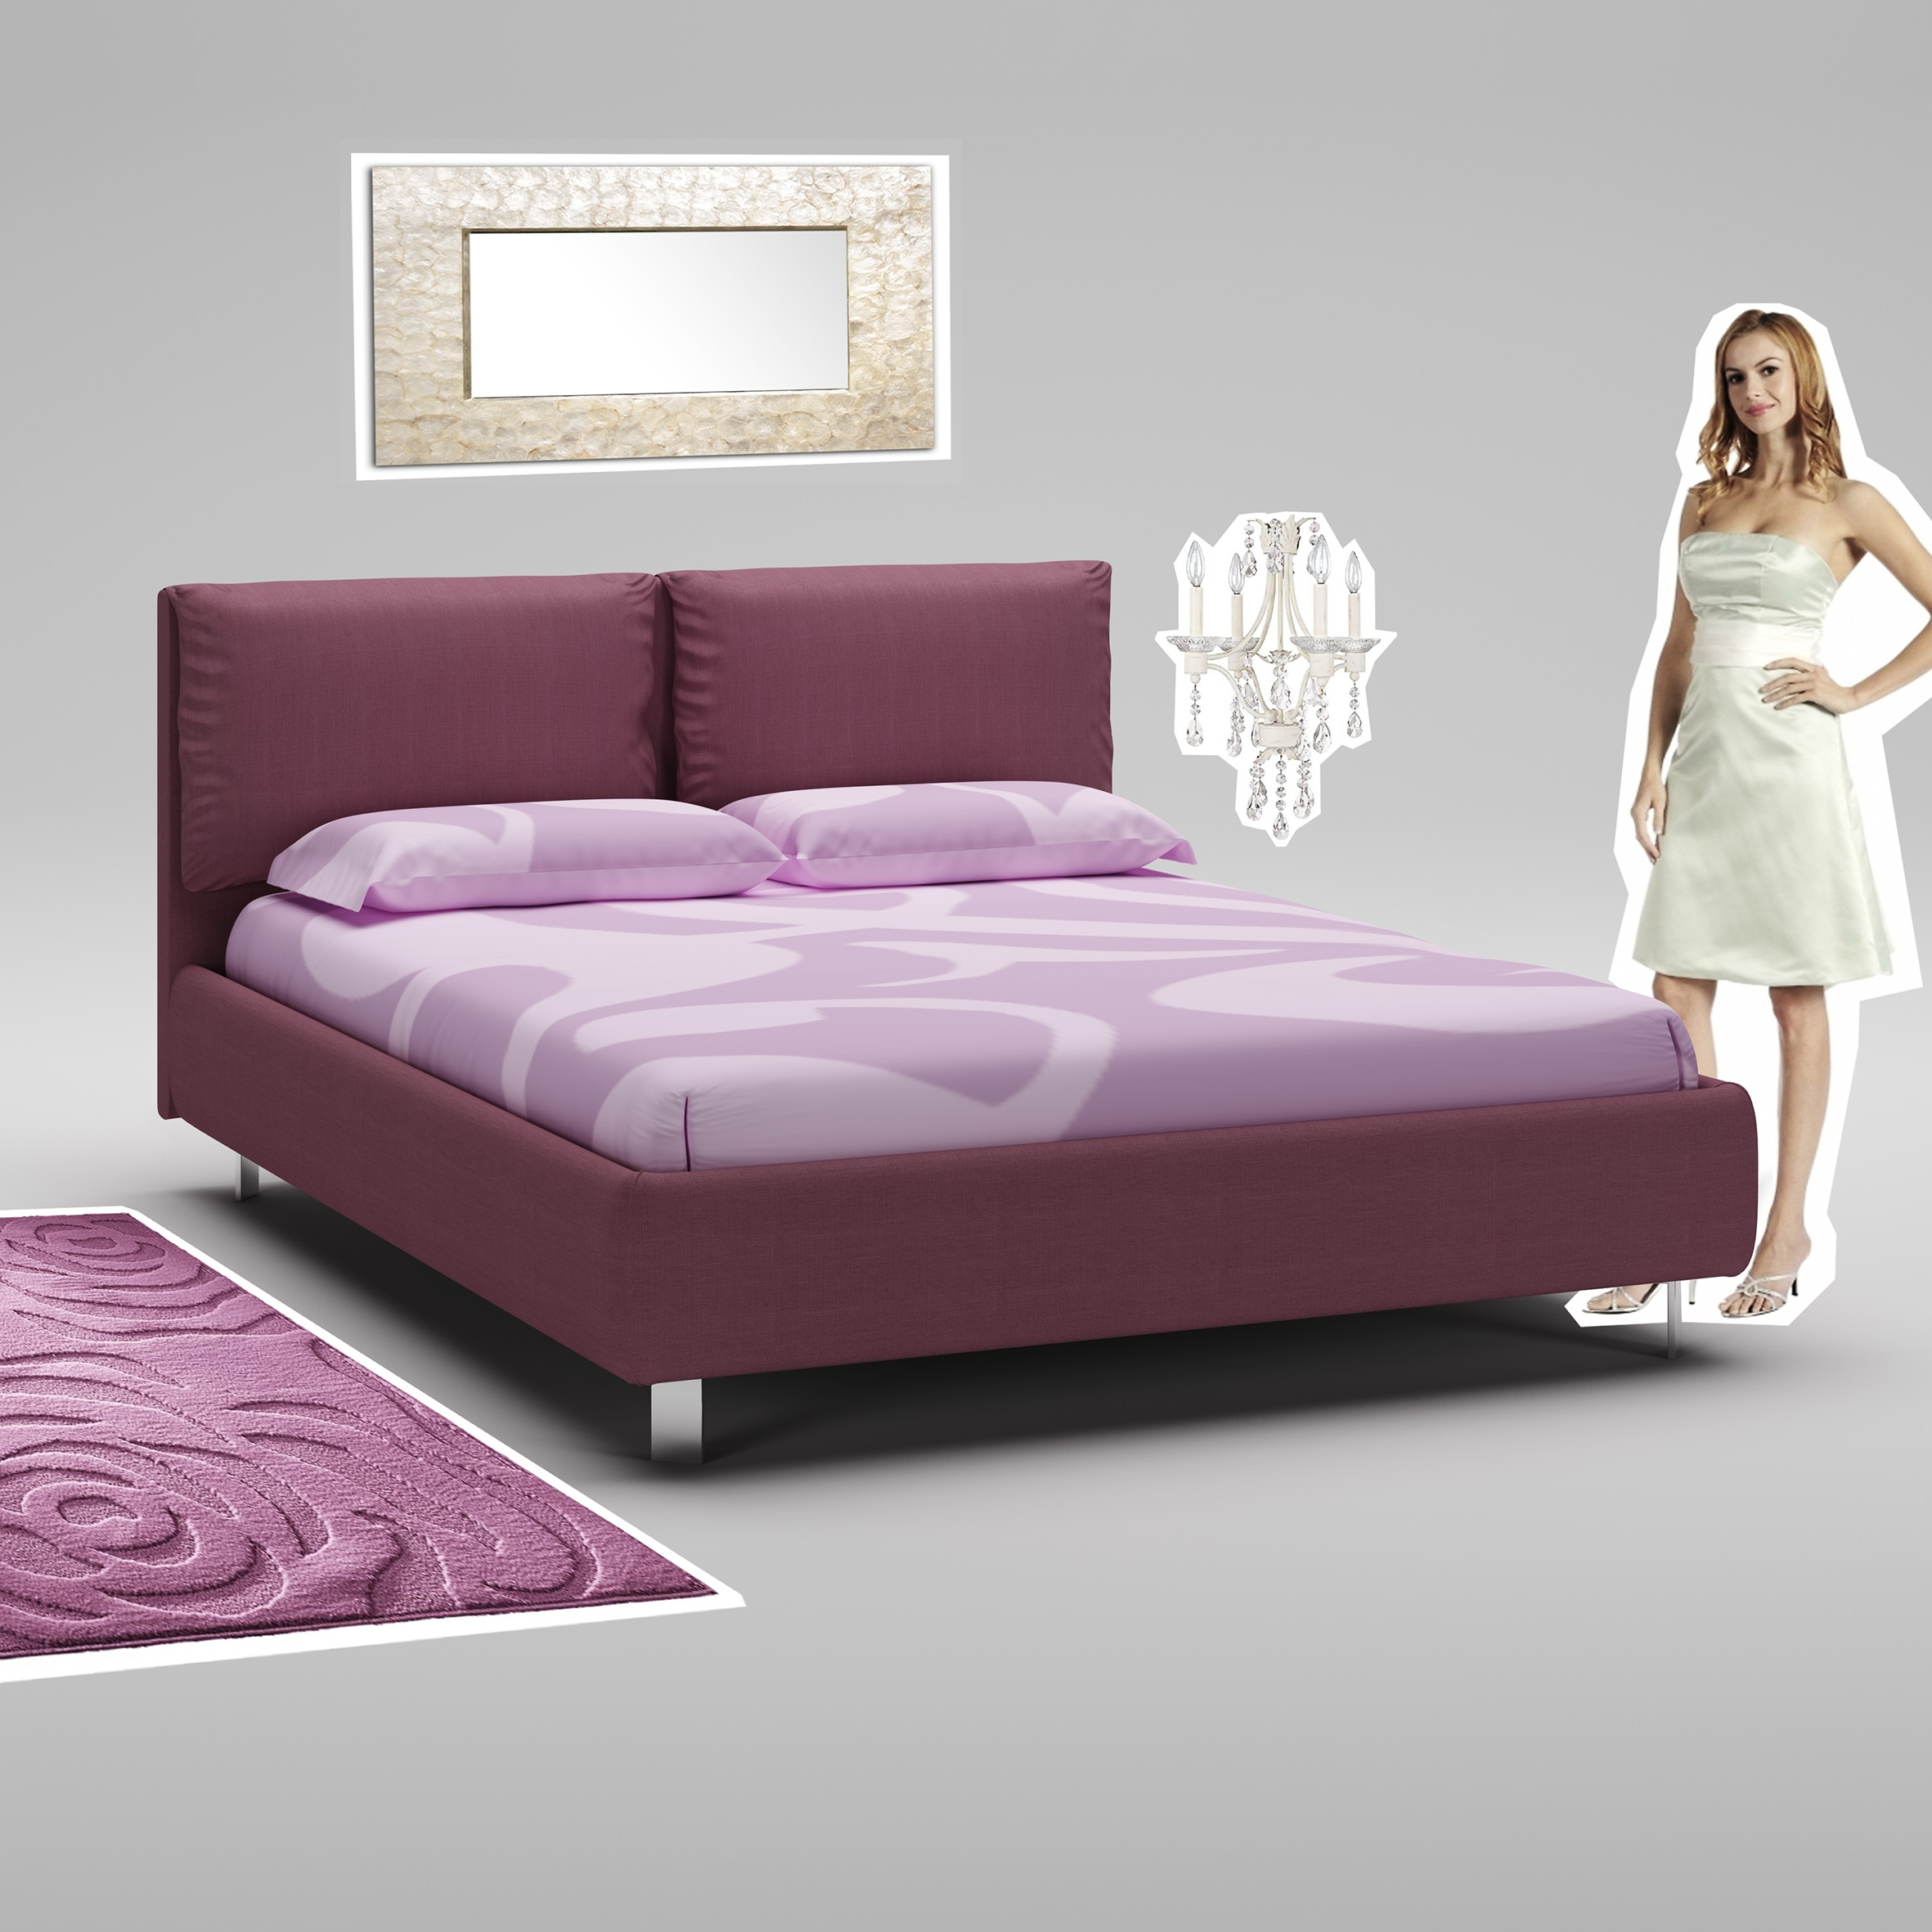 lit 160x200 avec cadre t te de lit vin moretti compact so nuit. Black Bedroom Furniture Sets. Home Design Ideas